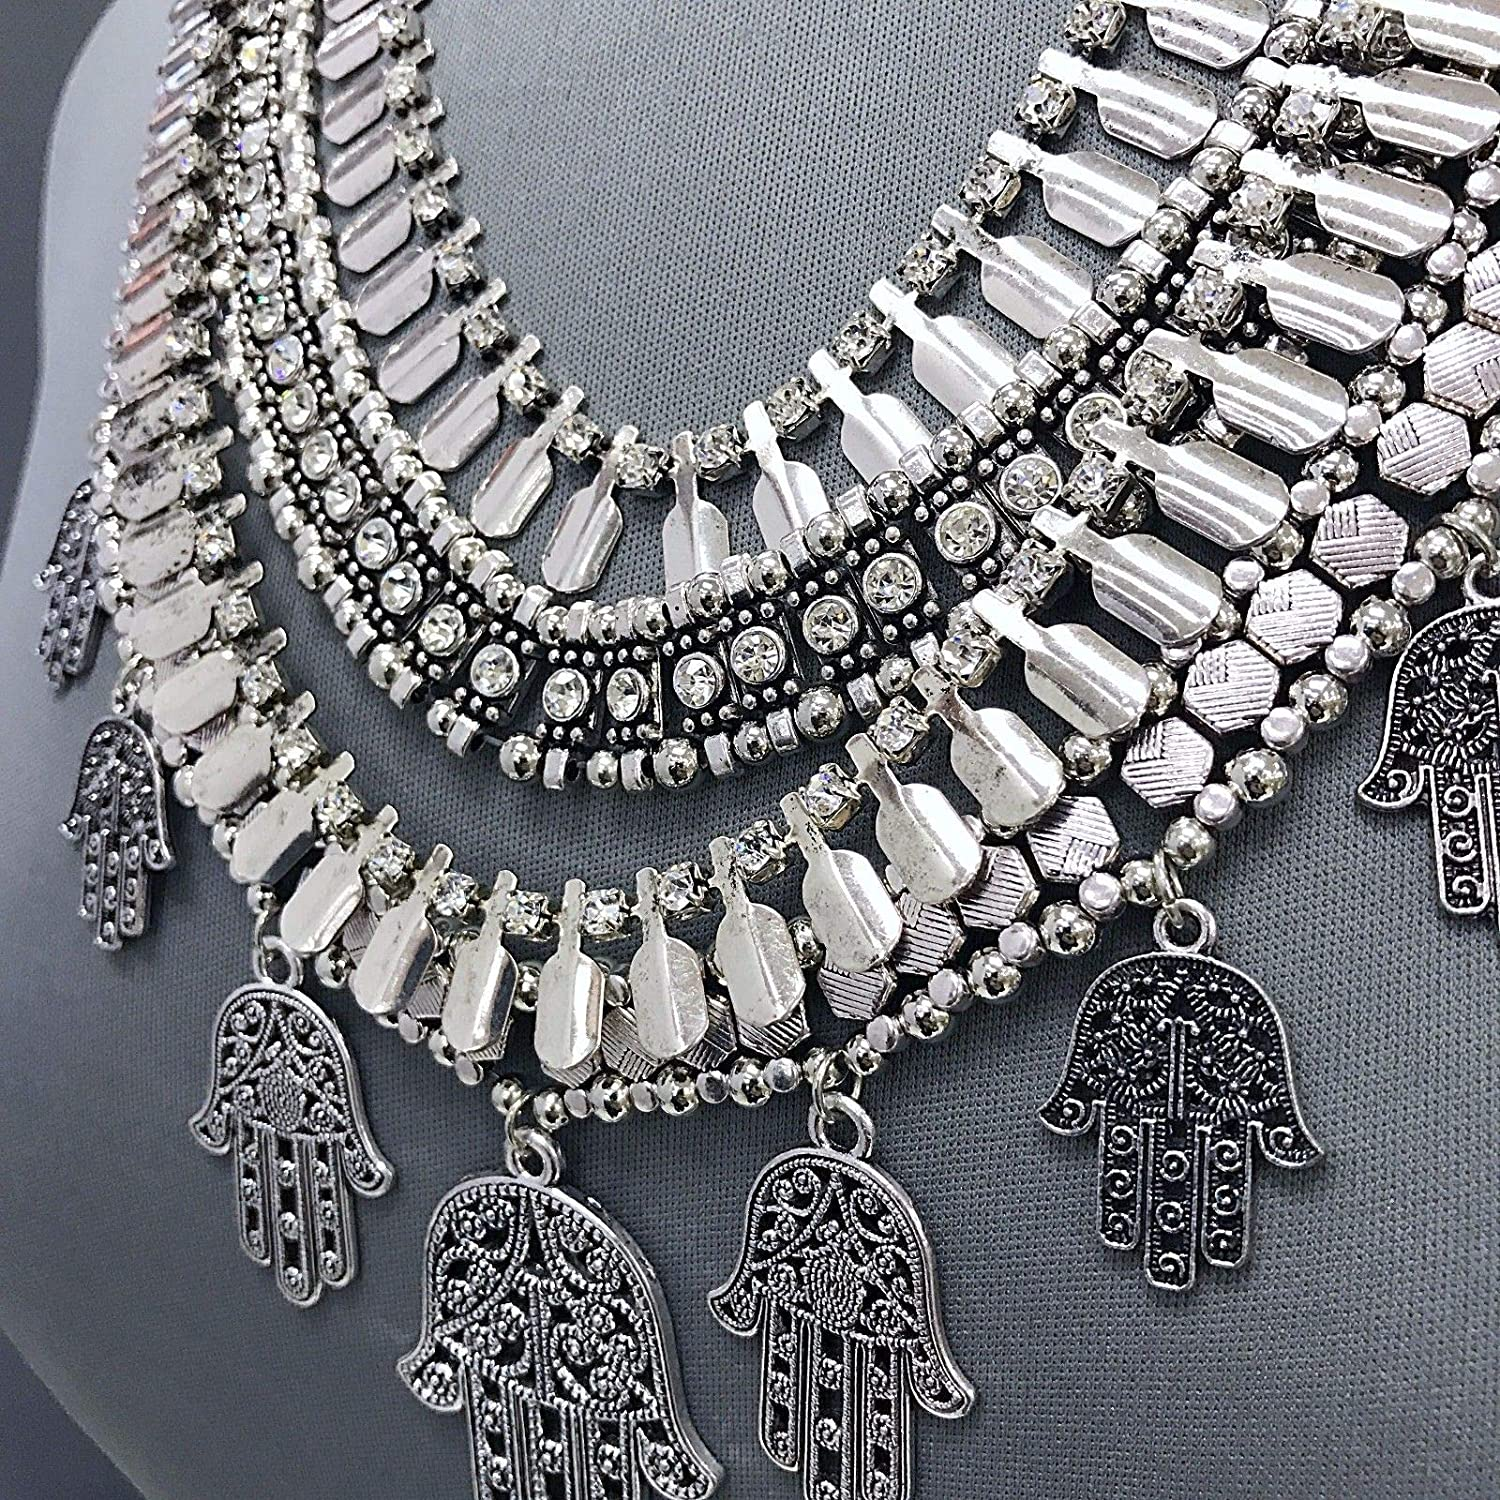 Flamboyant Antique Silver Hamsa Hand Charms Statement Necklace With Earrings Set For Women Gold Cotton Filled Gift Box for Free